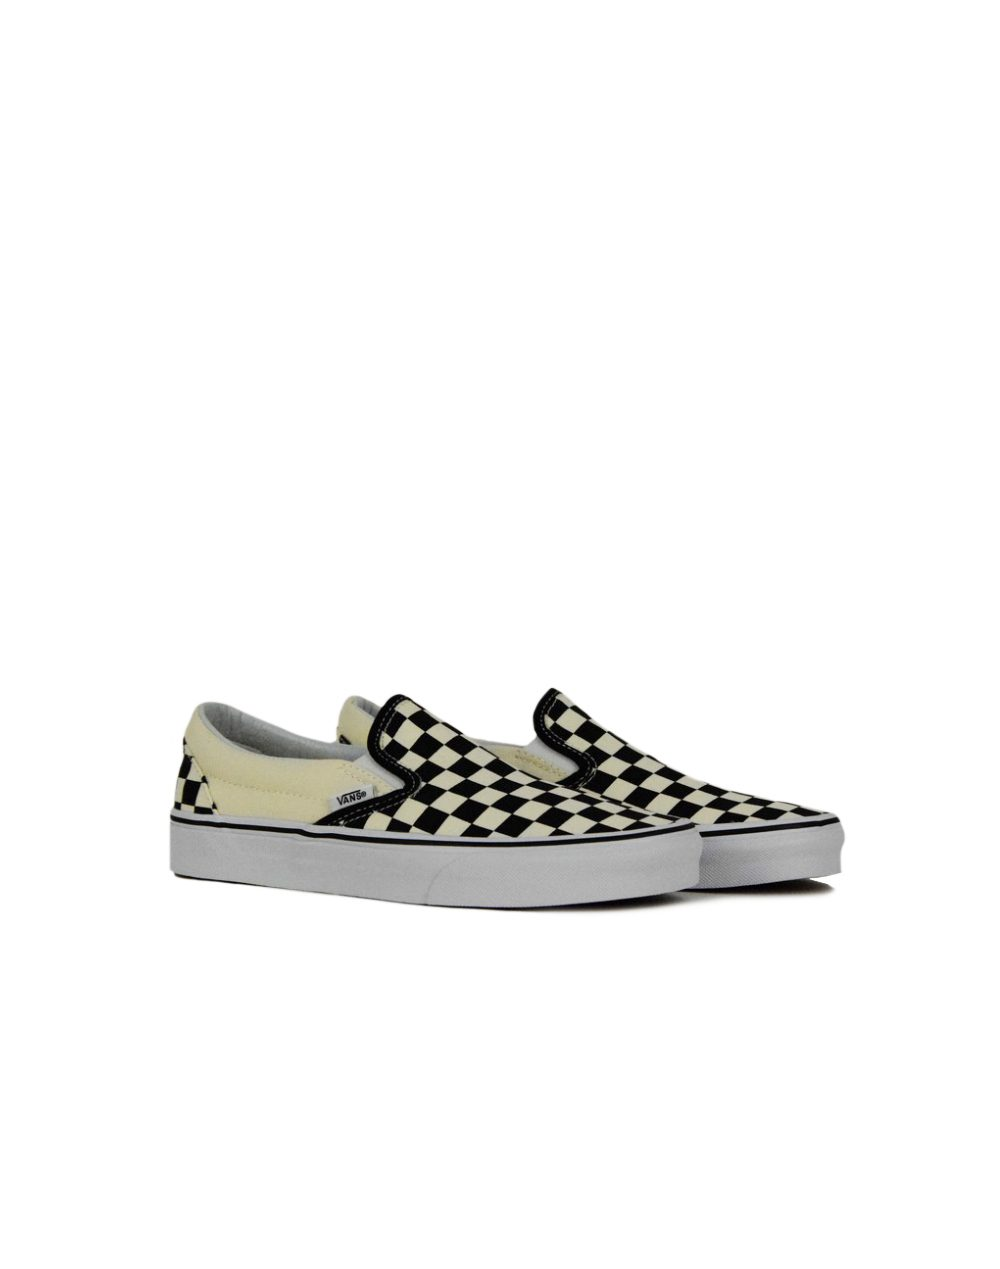 Vans Classic Slip-On (VN000EYEBWW1) White Checkerboard